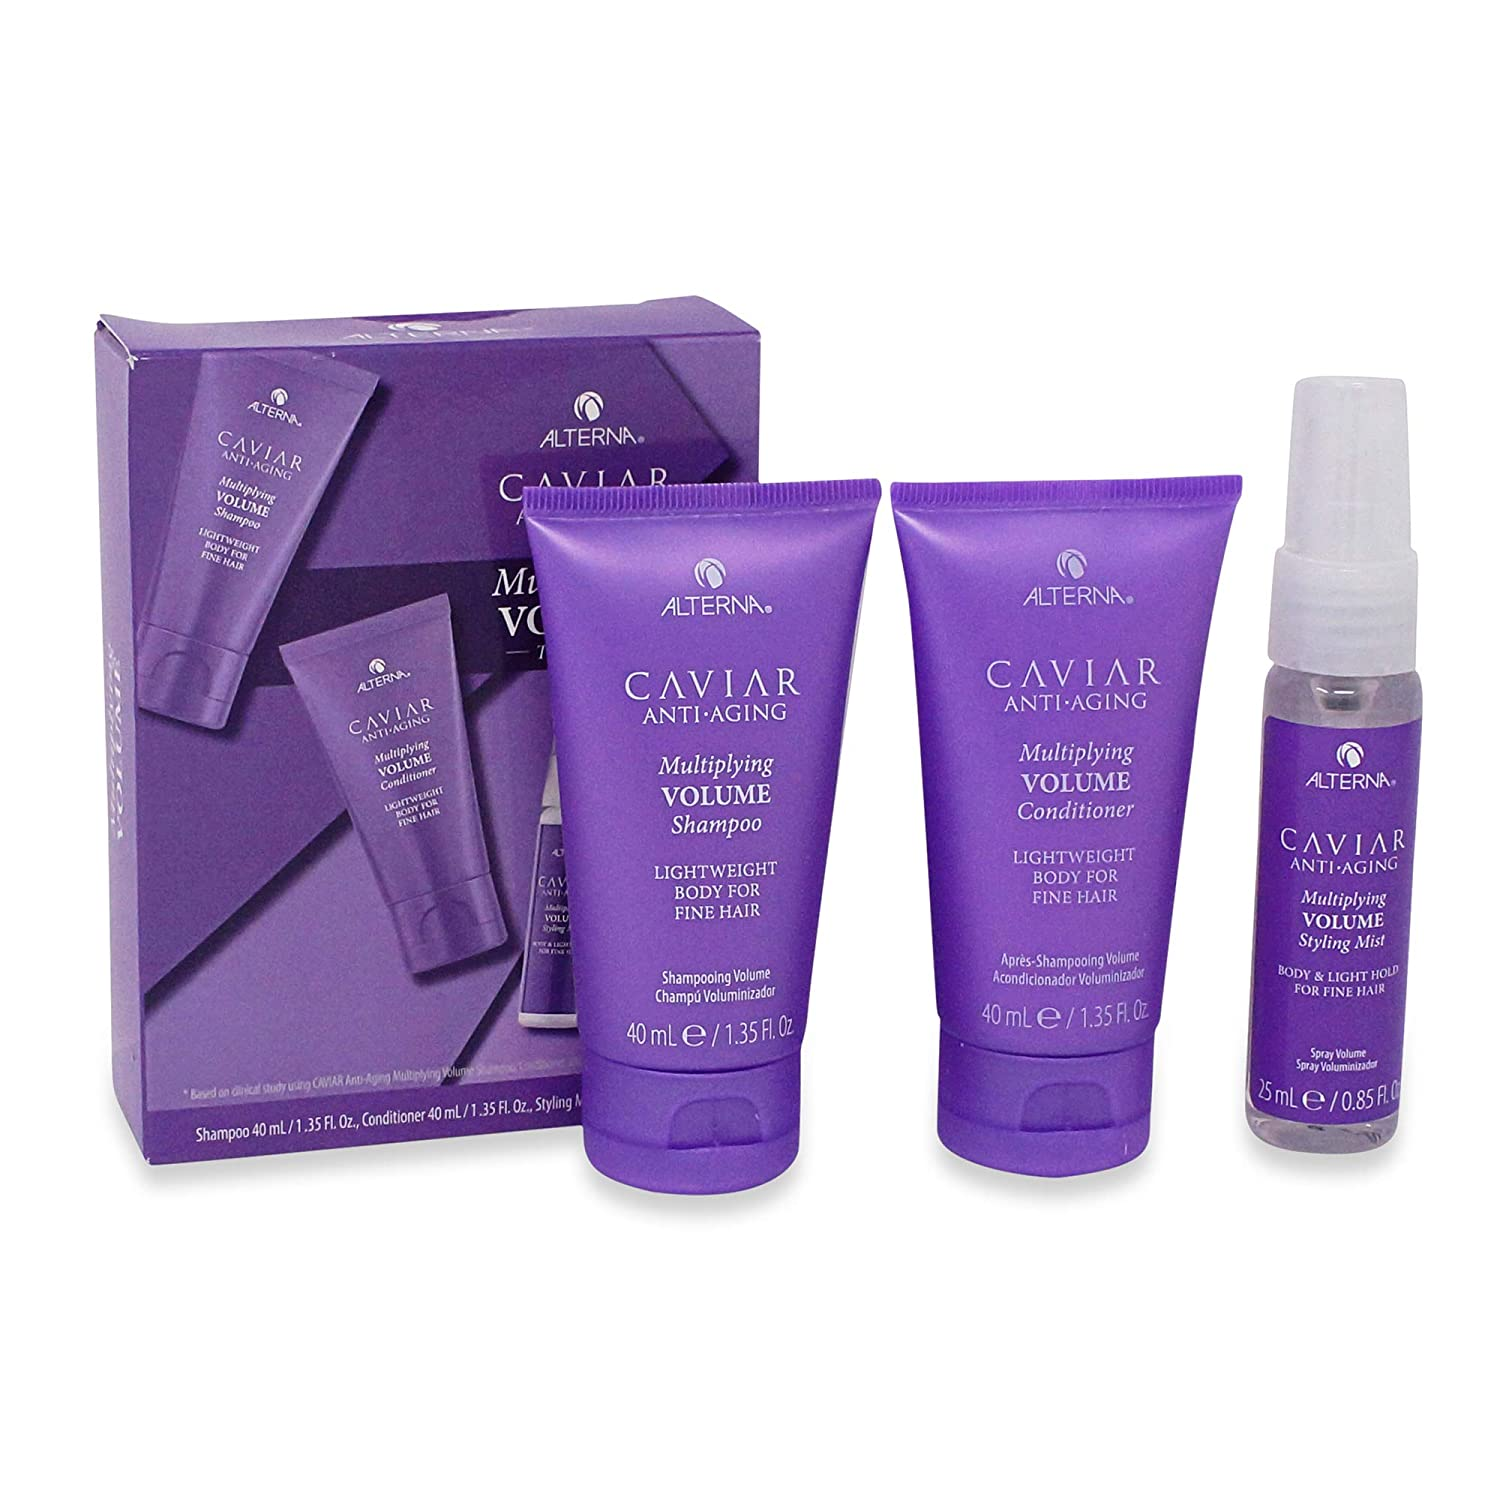 Alterna Caviar Anti-Aging Shampoo-Conditioner-Styling Mist Kit Multiplying Volume1.35-1.35-0.86 Ounce 40-40-26 Gram